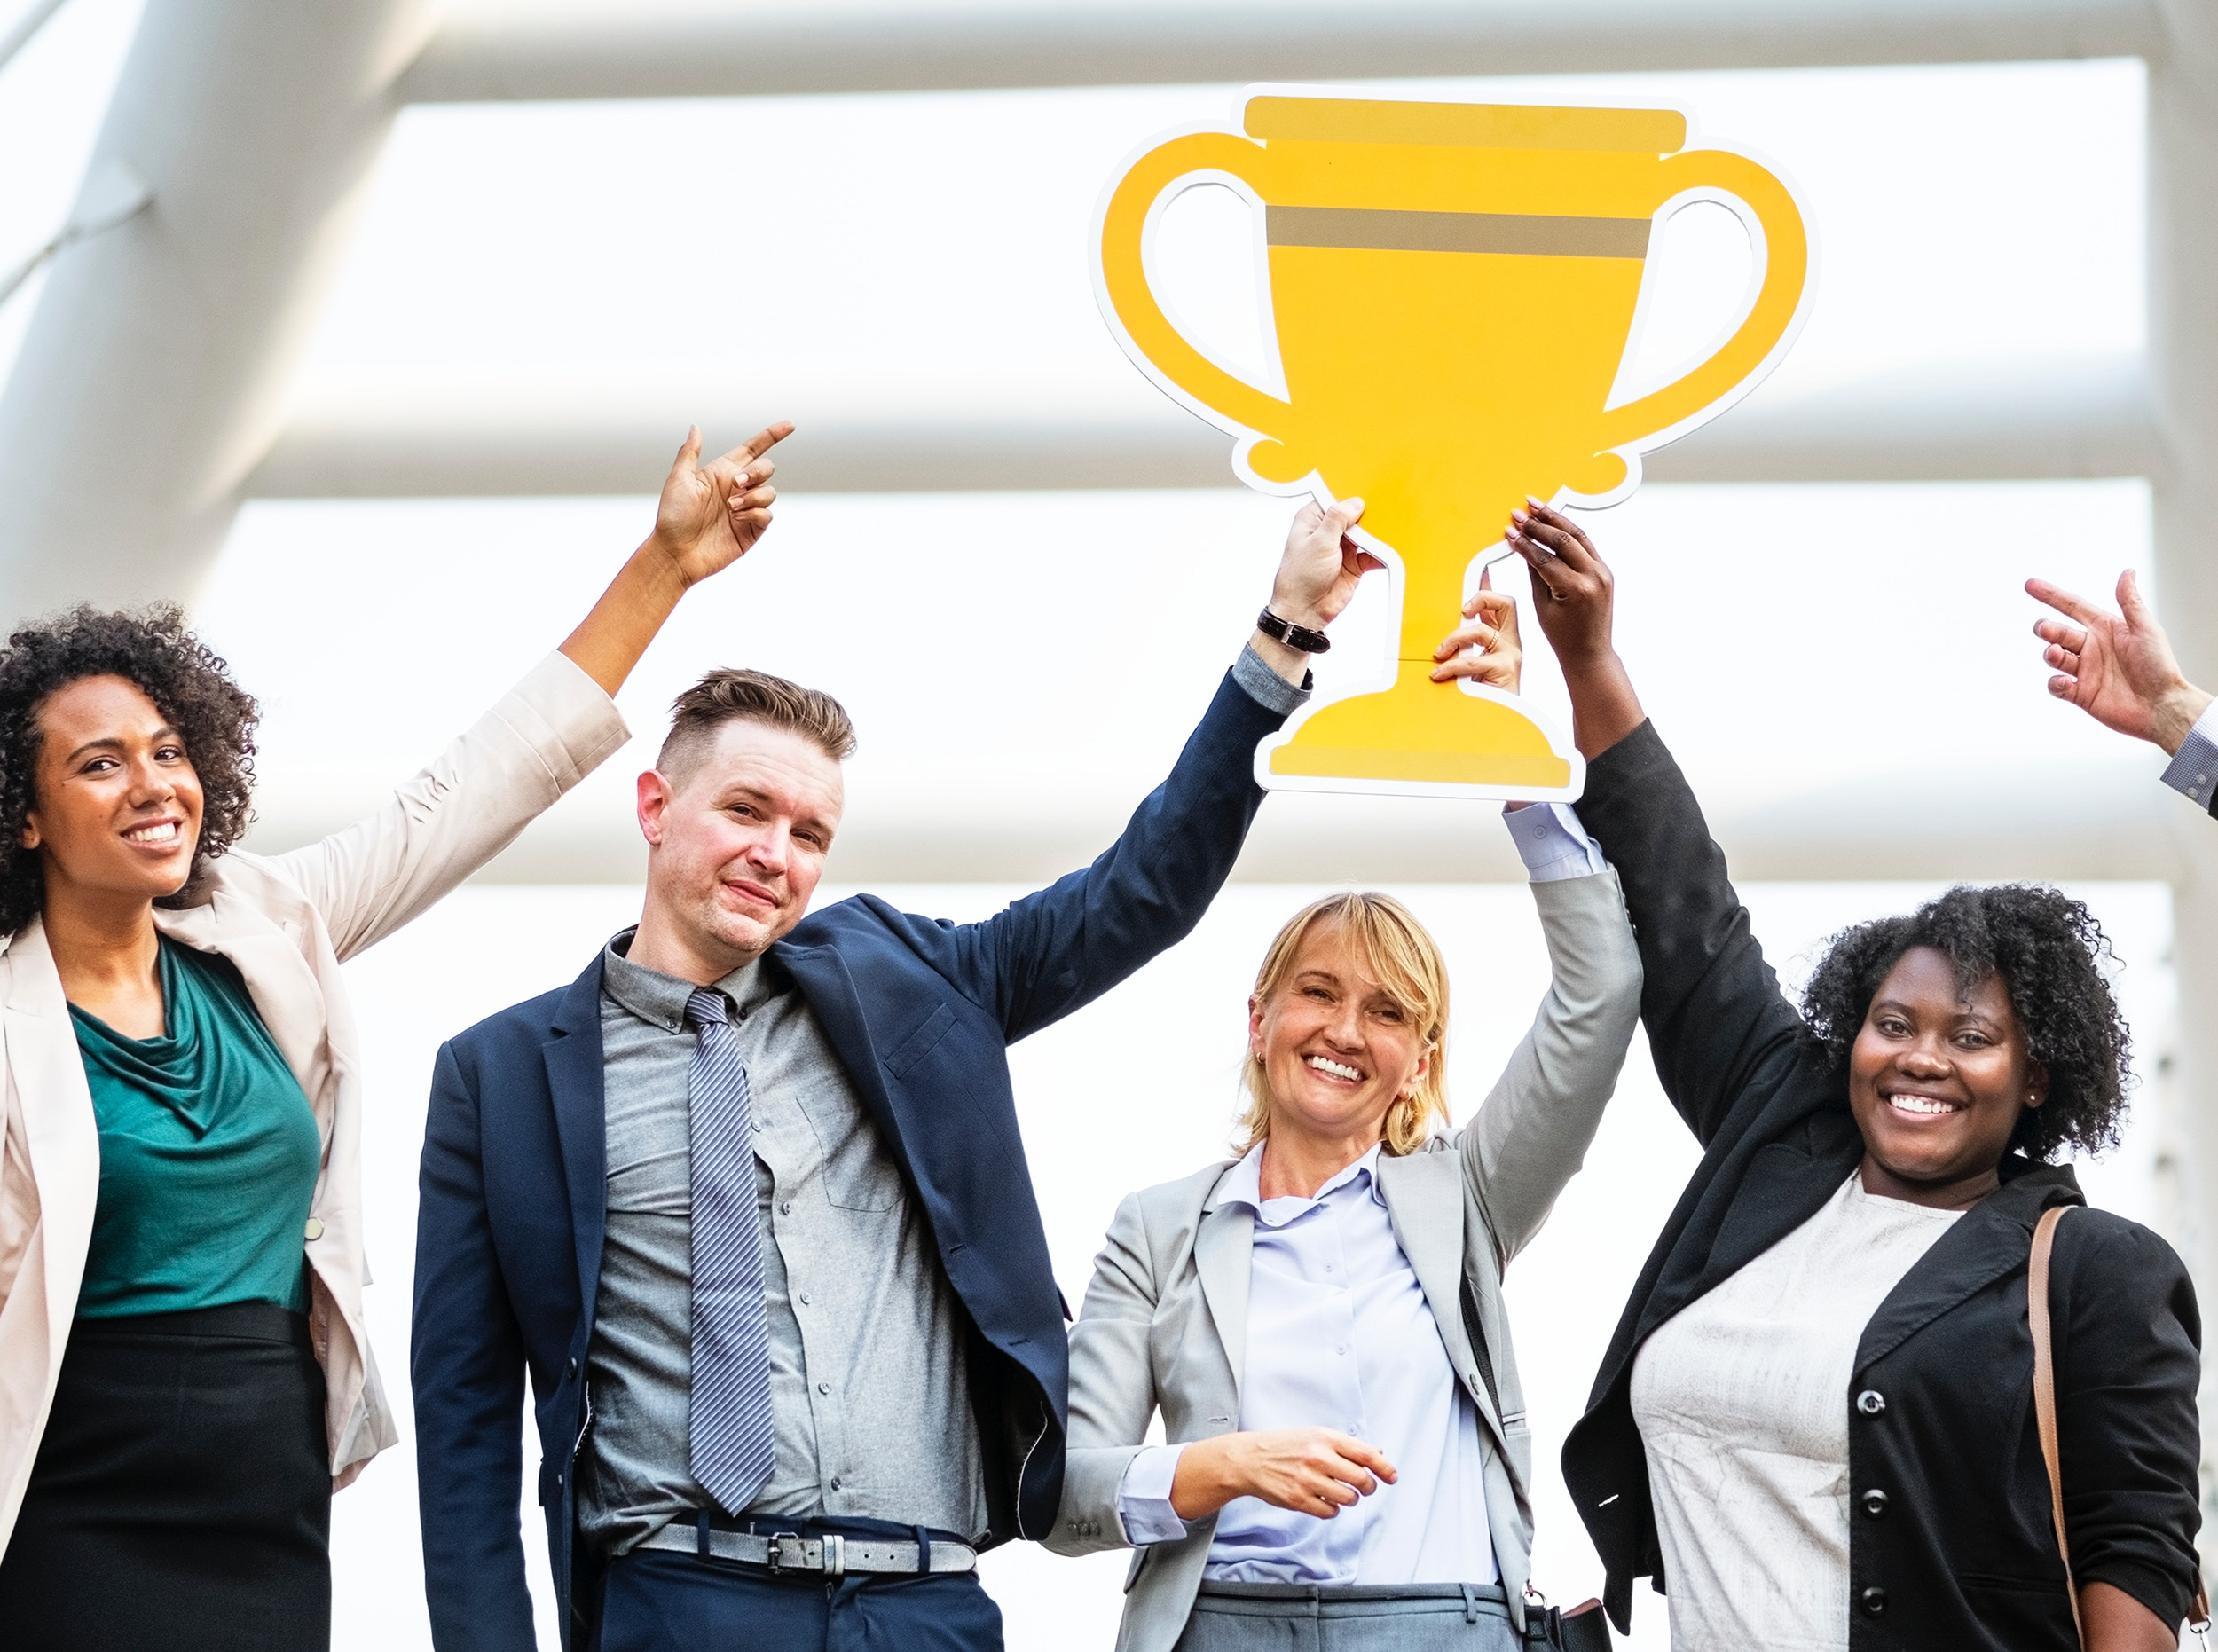 Ultimo mese per candidare la propria azienda alle Classifiche Best Workplaces™ 2019